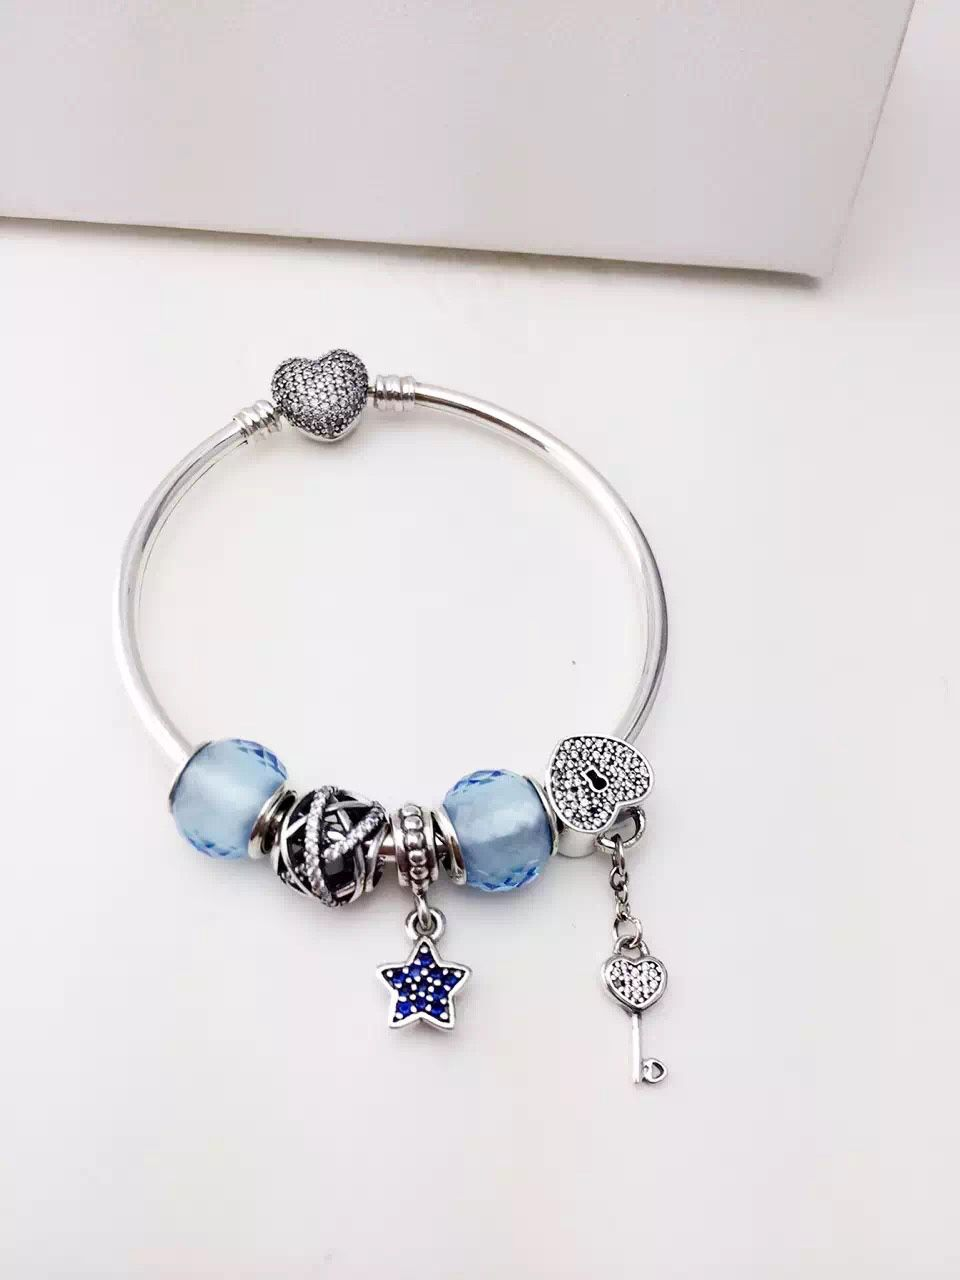 159 Pandora Charm Bracelet Blue Star Key Heart Hot Sku Cb01036 Ideas